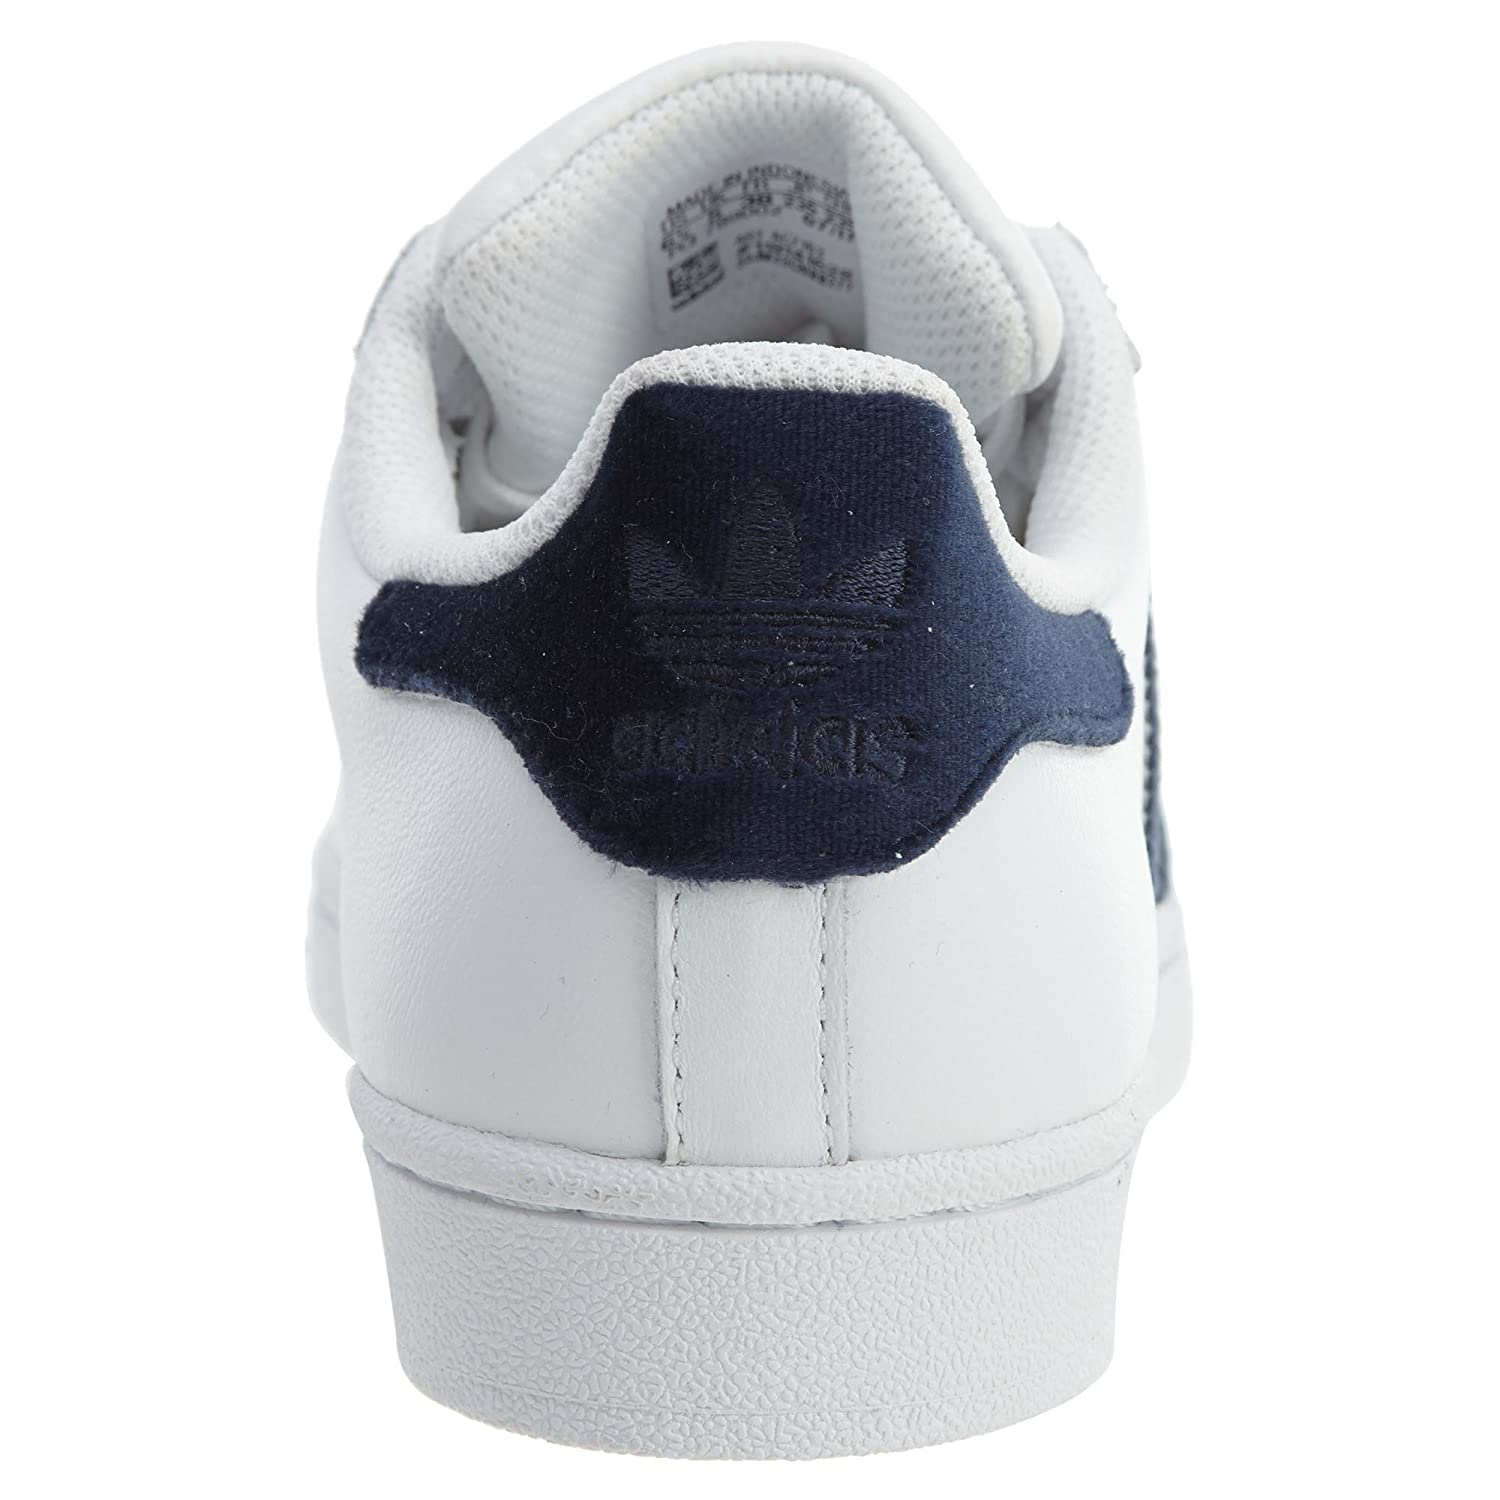 Adidas-Superstar-Women-039-s-Fashion-Casual-Sneakers-Athletic-Shoes-Originals thumbnail 27